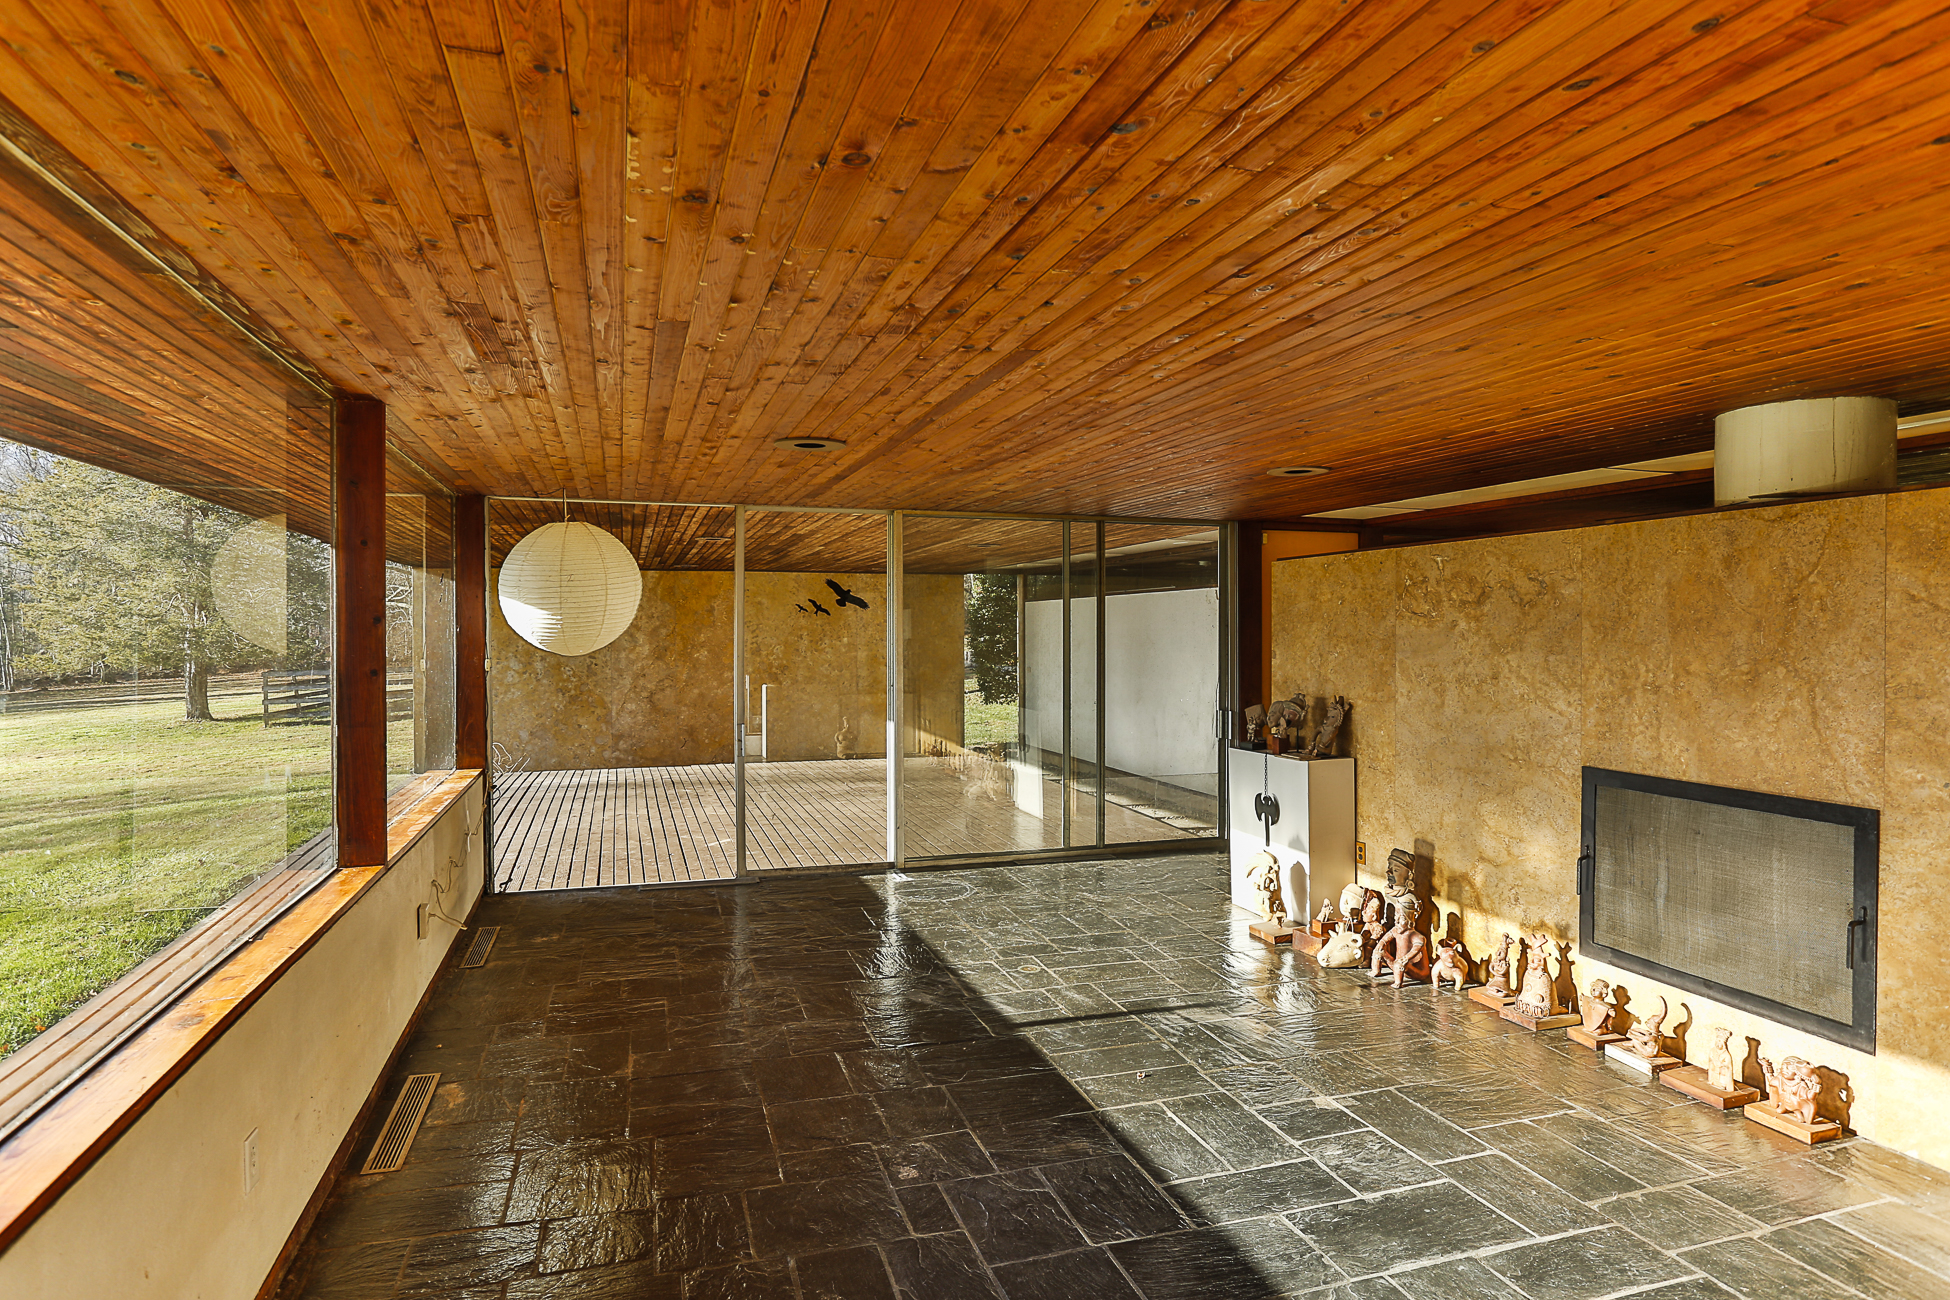 Additional photo for property listing at A Spectacular Setting 206 Hopewell Amwell Road 霍普维尔, 新泽西州 08525 美国